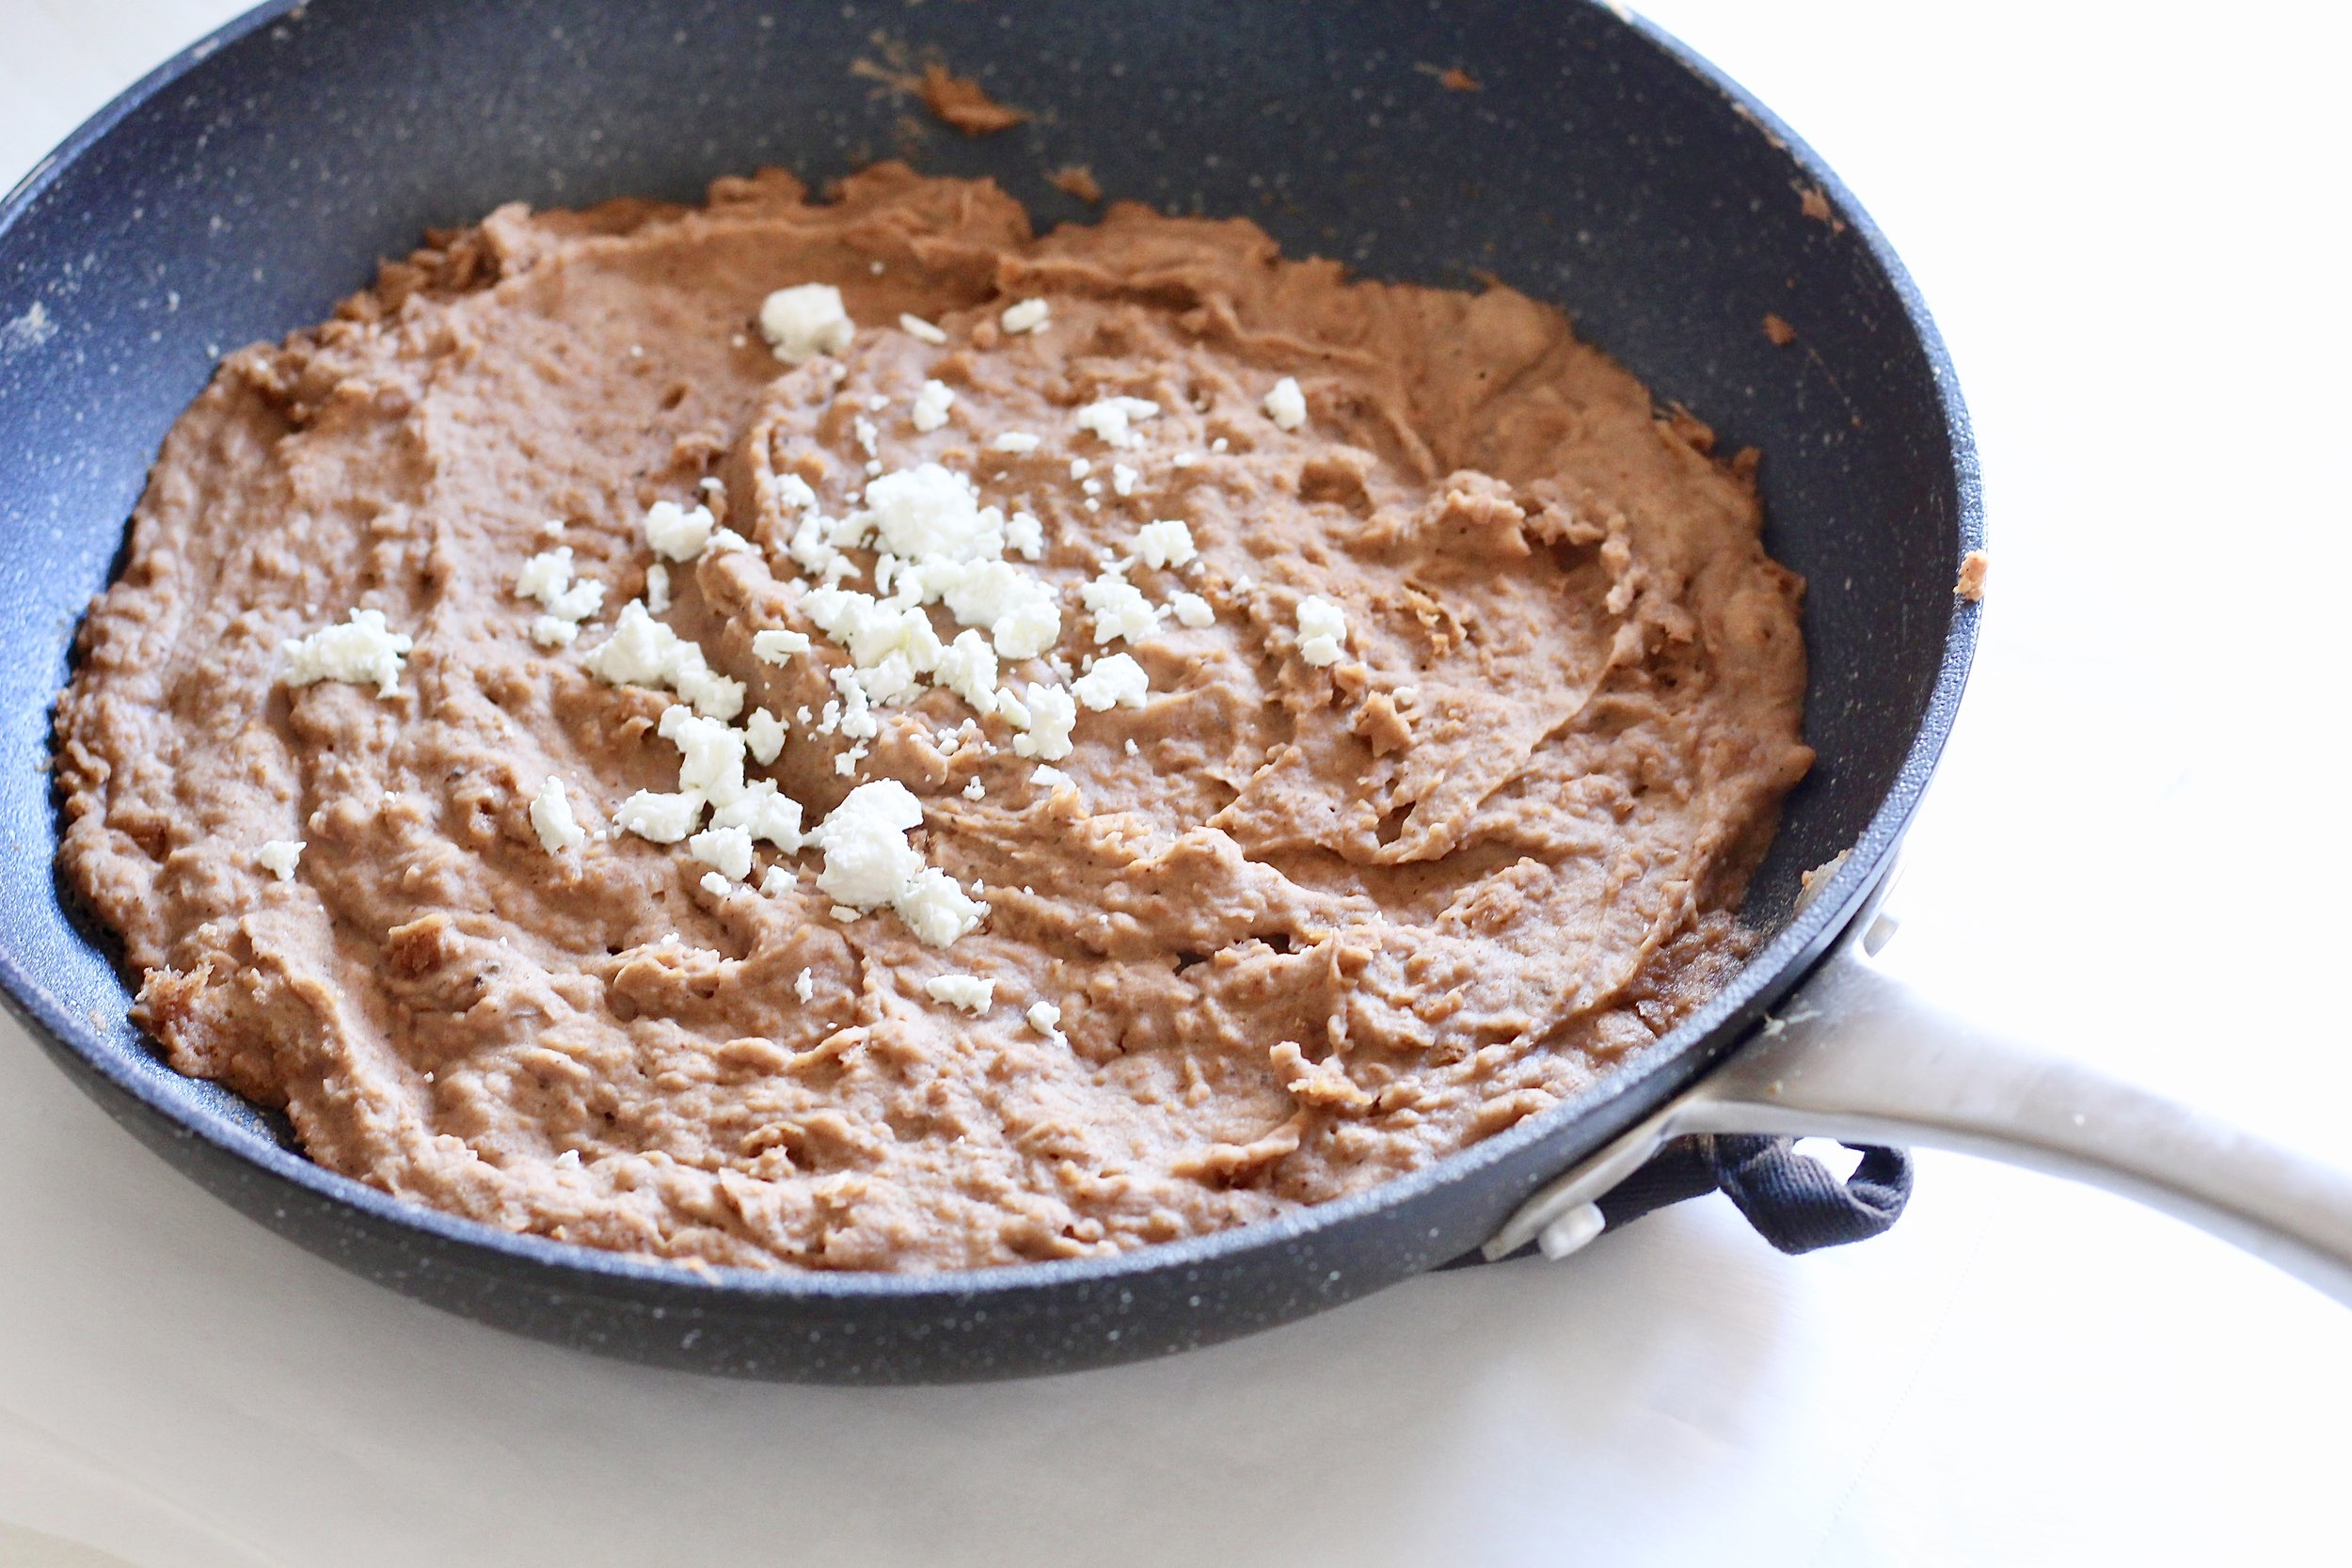 Semi-homemade Mexican refried beans